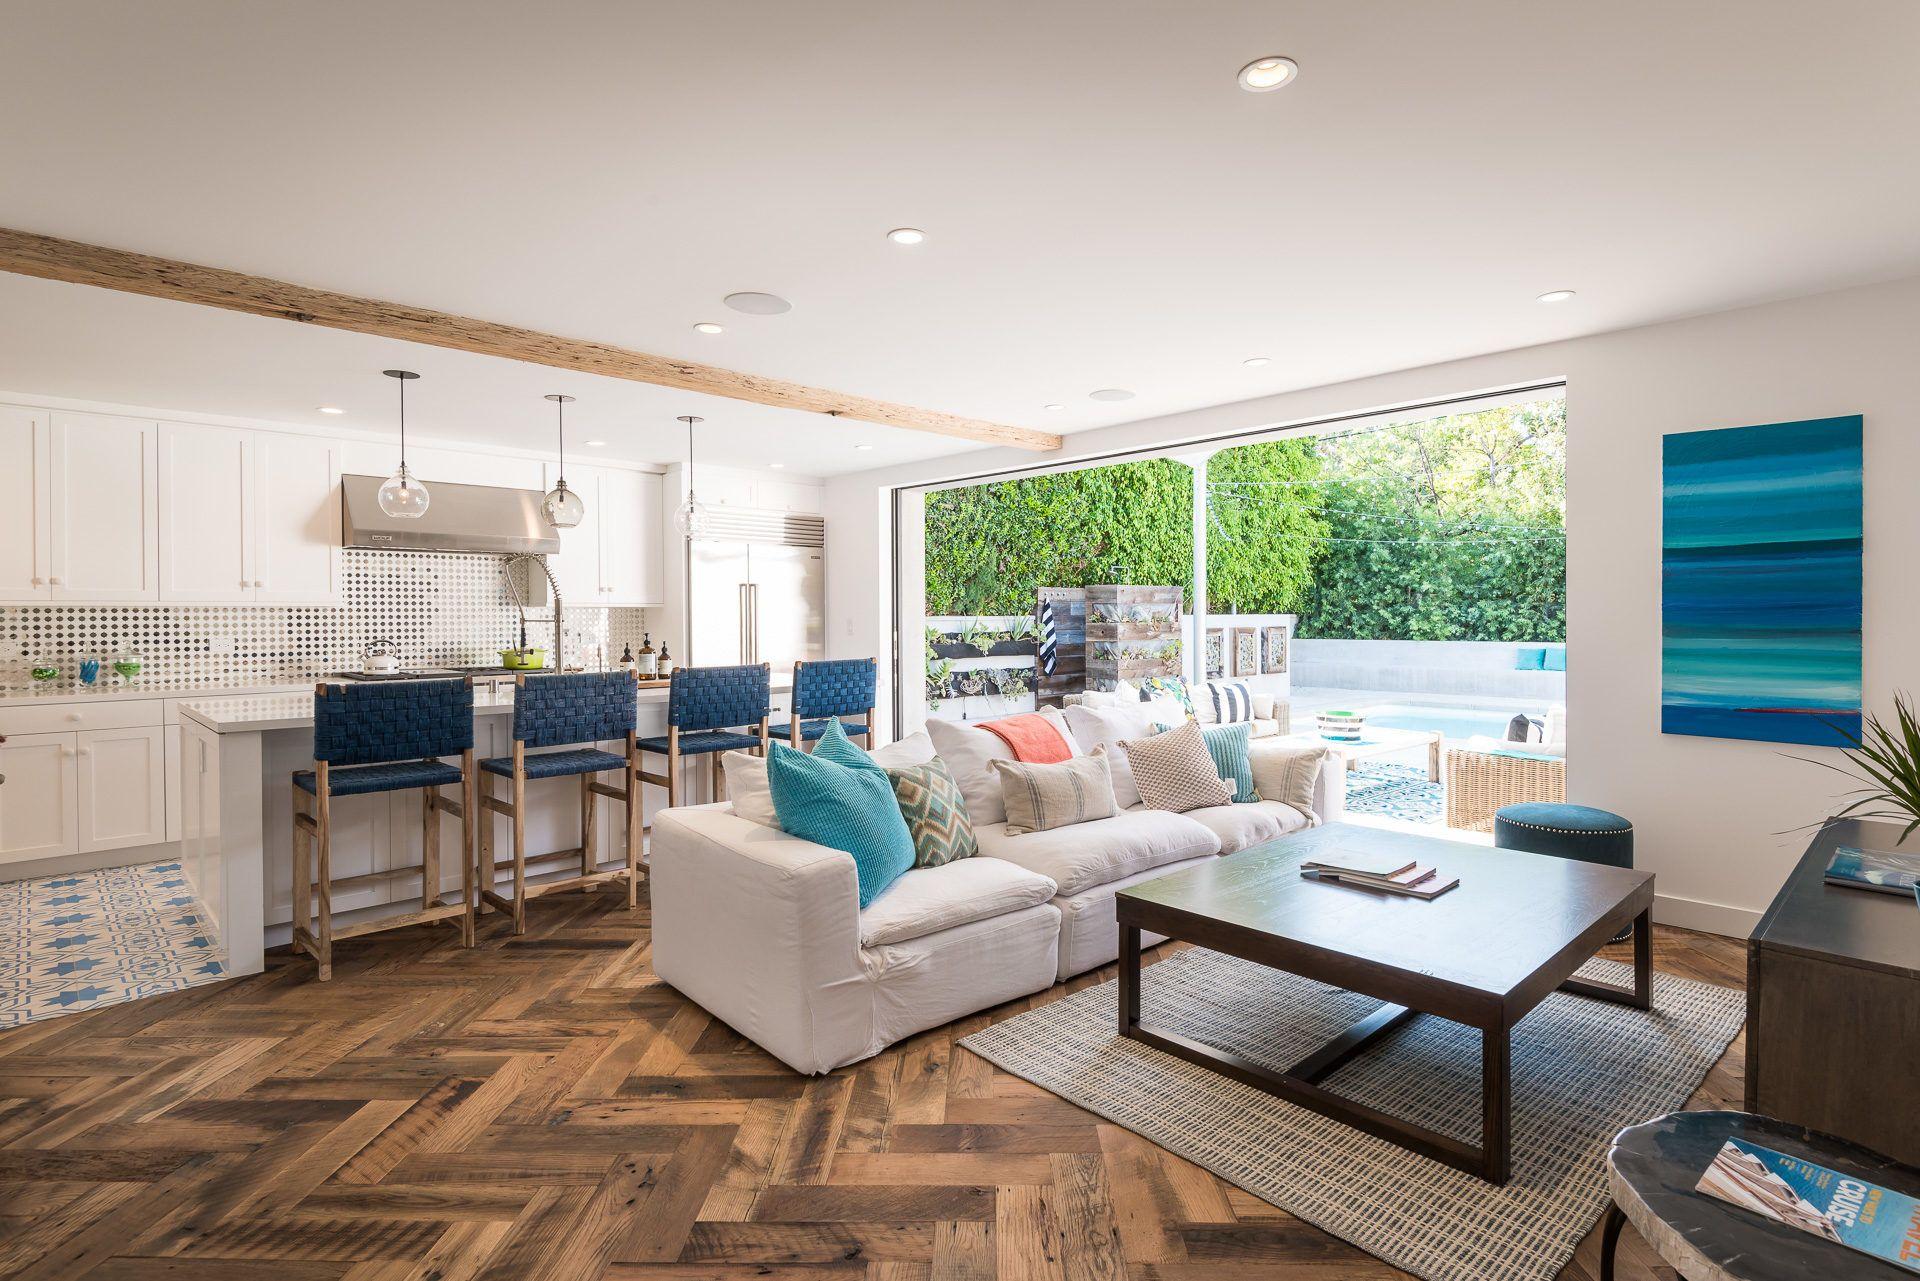 Mid century meets boho chic by zillow photo 14 of 30 dwell